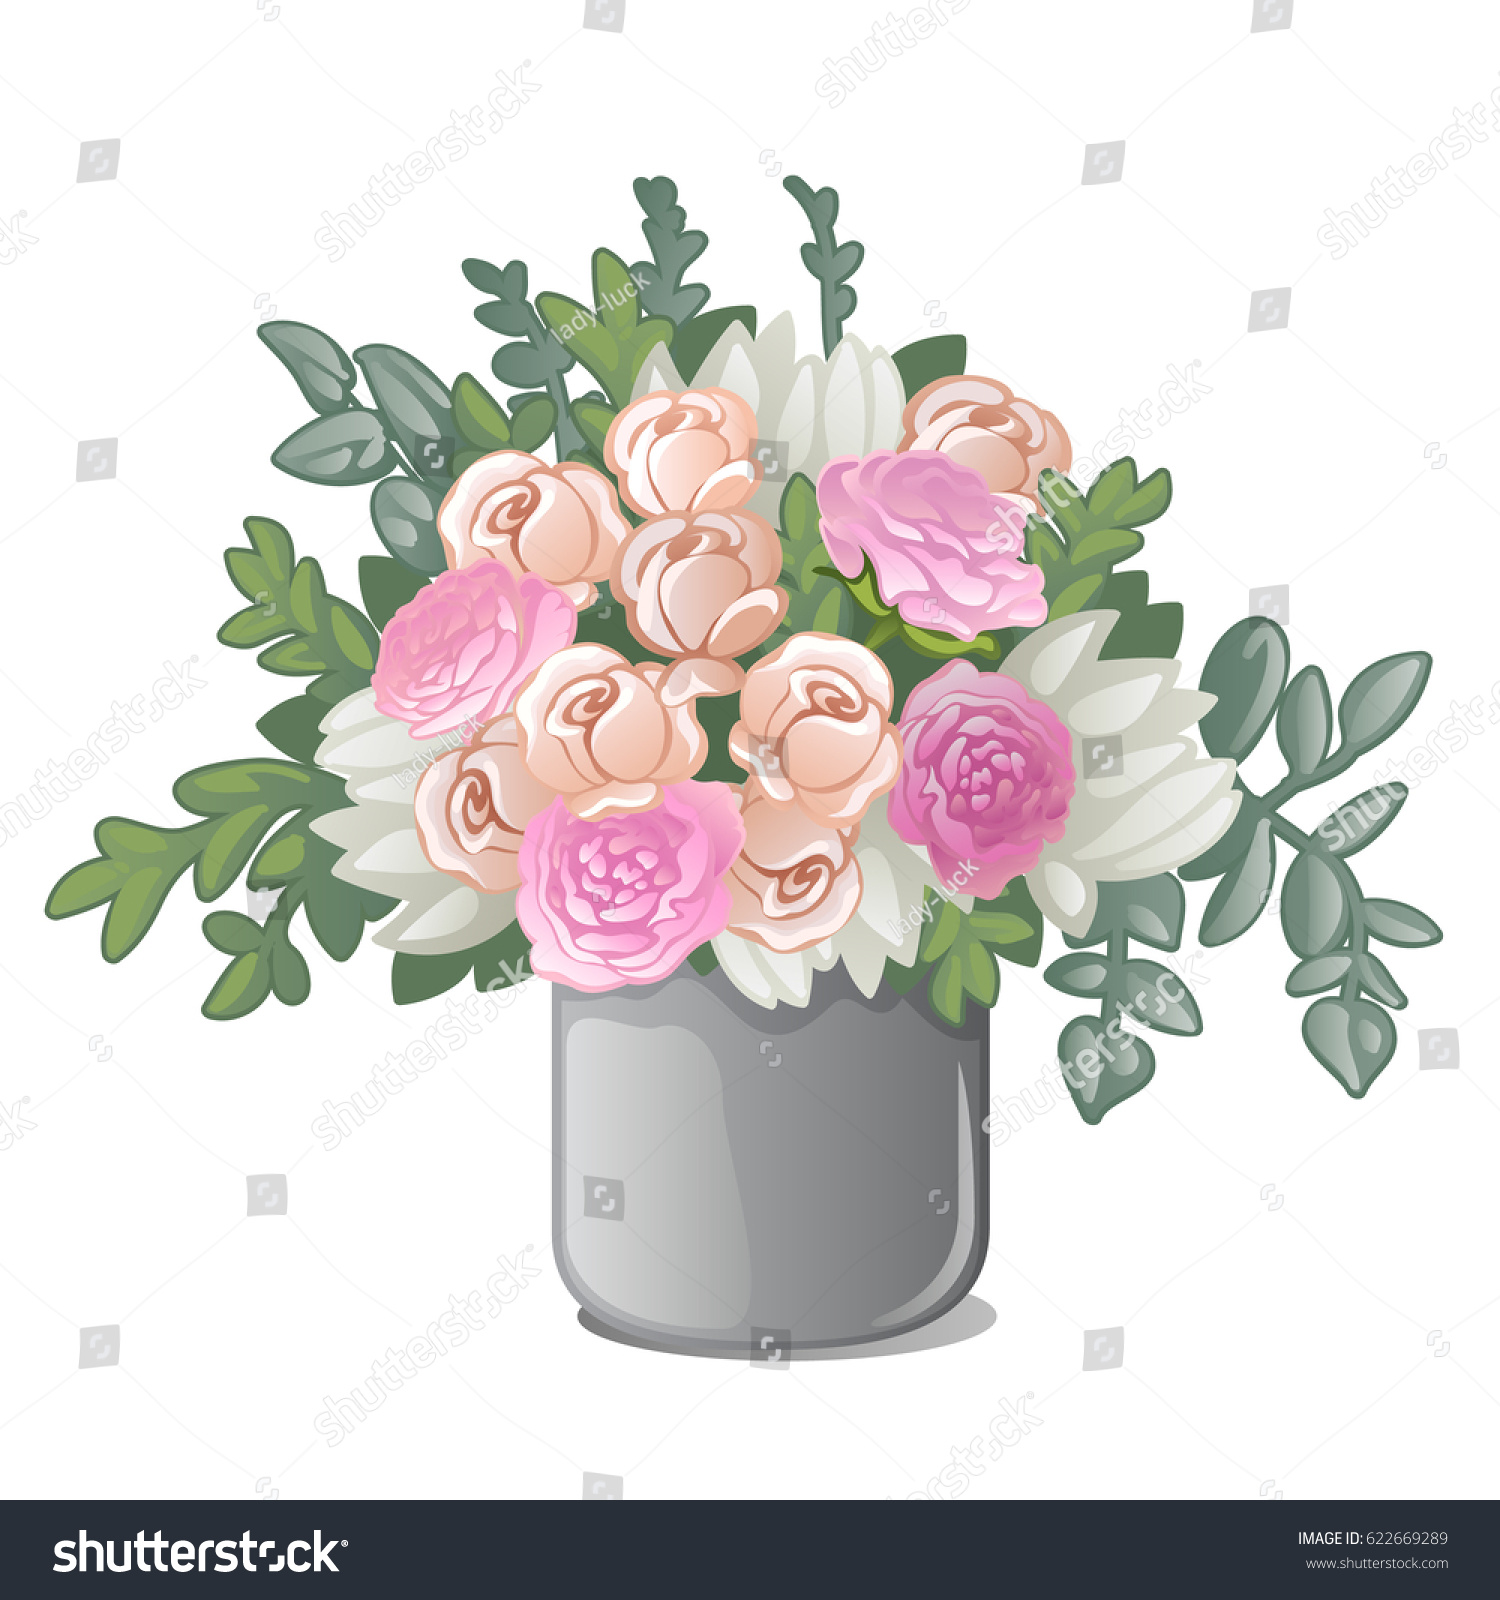 Vase With Bouquet Of Flowers Isolated On White Background Vector